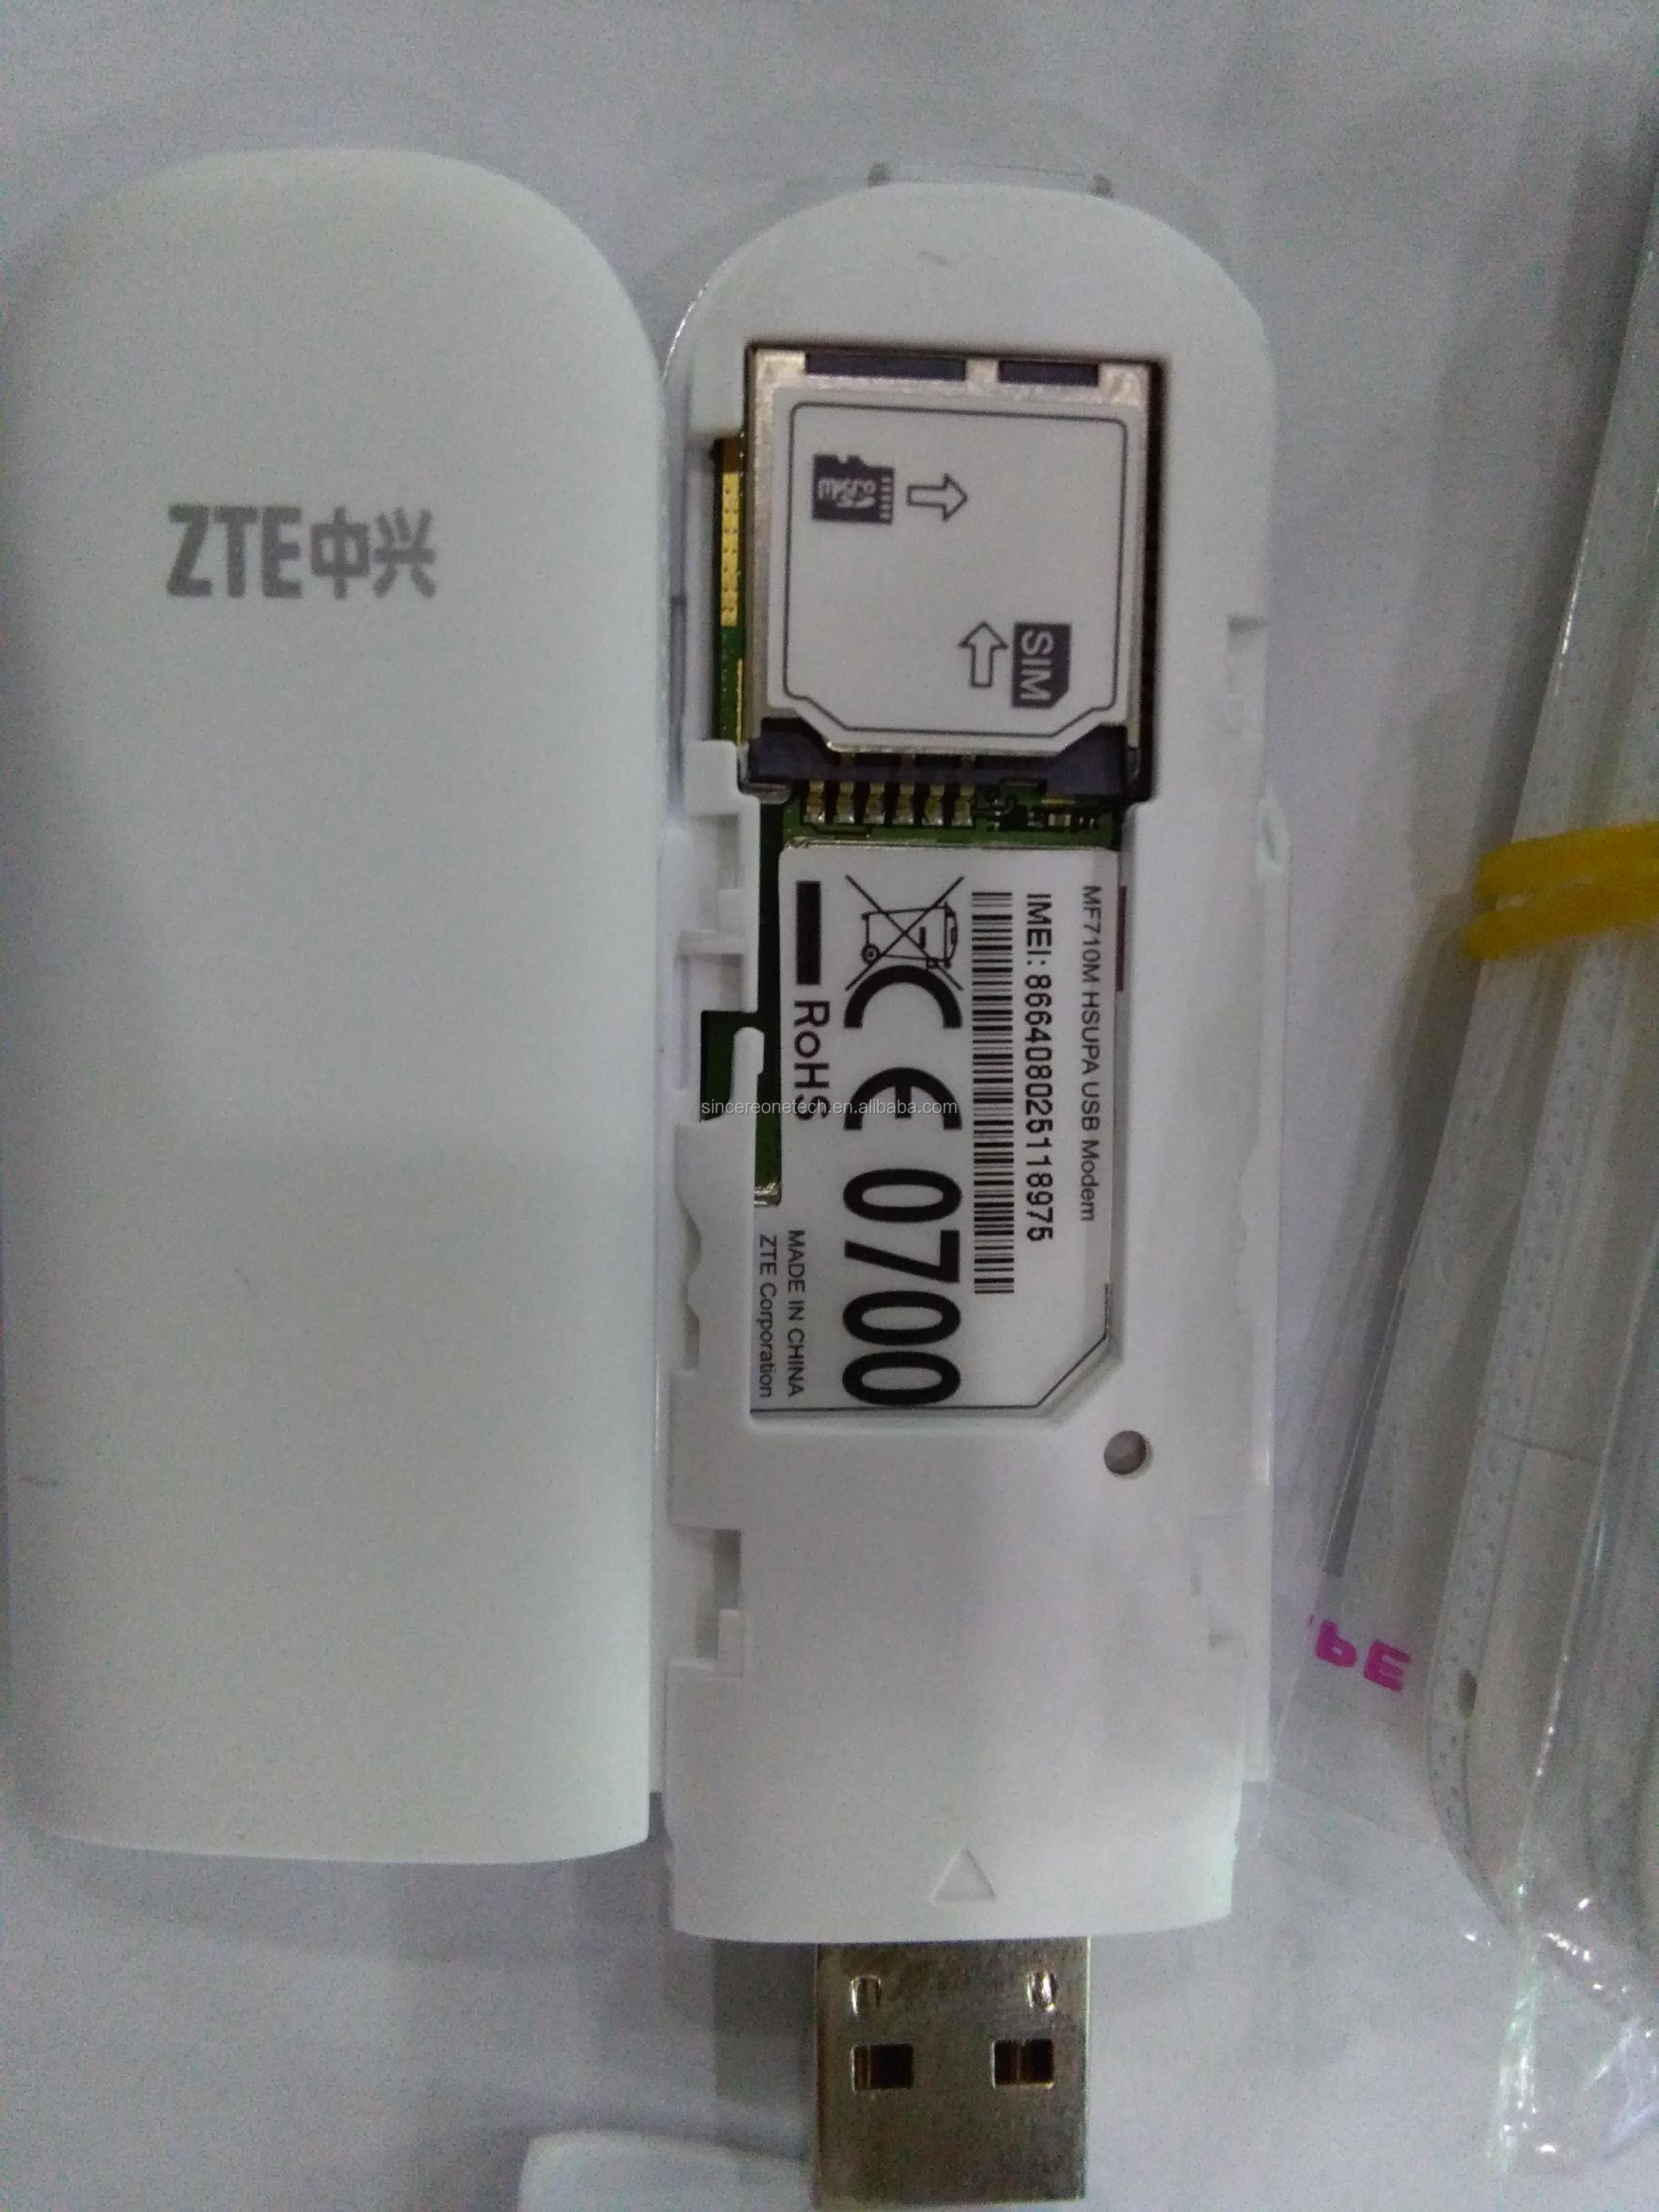 Zte Mf710m Hspa+ 21mbps Usb Modem - Buy Mf710m,Zte Mf710,Cheap 3g Modem  Product on Alibaba com